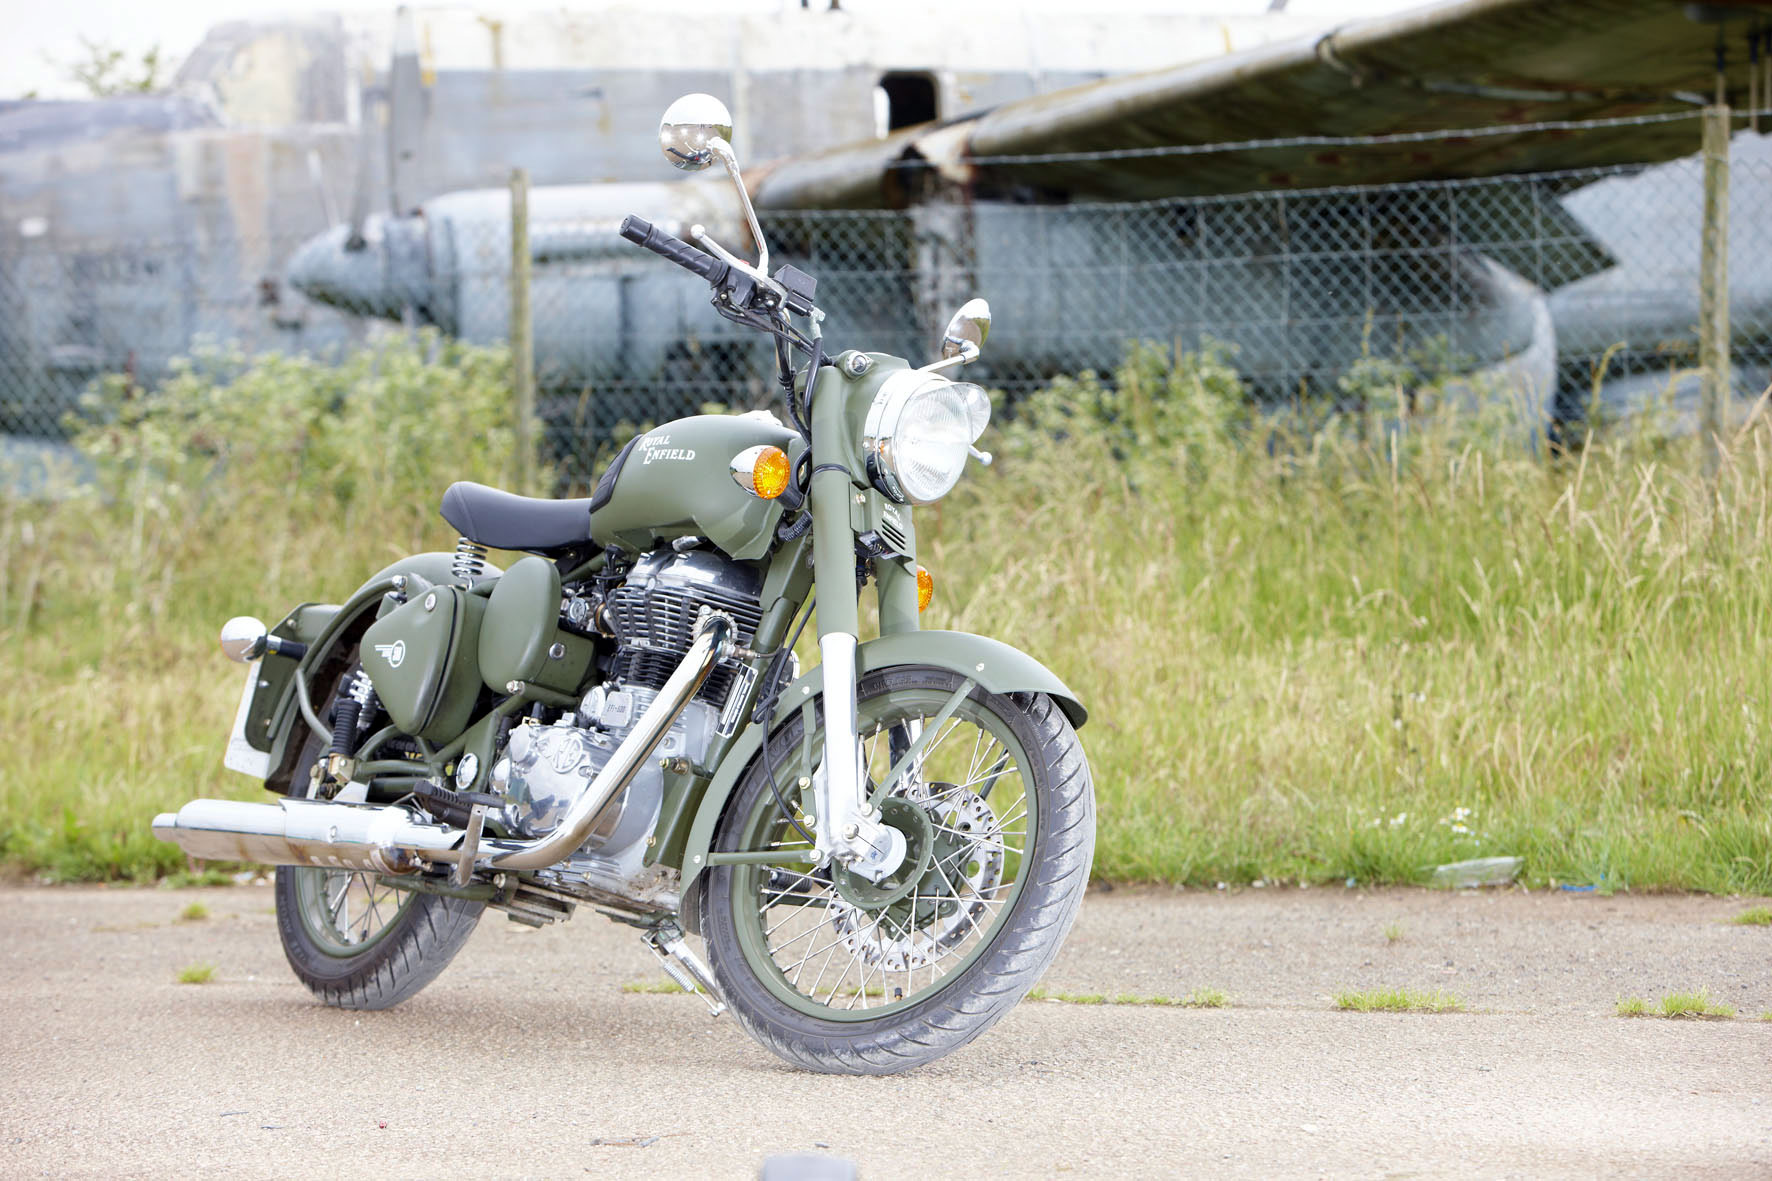 Royal Enfield Bullet 350 Army images #122951